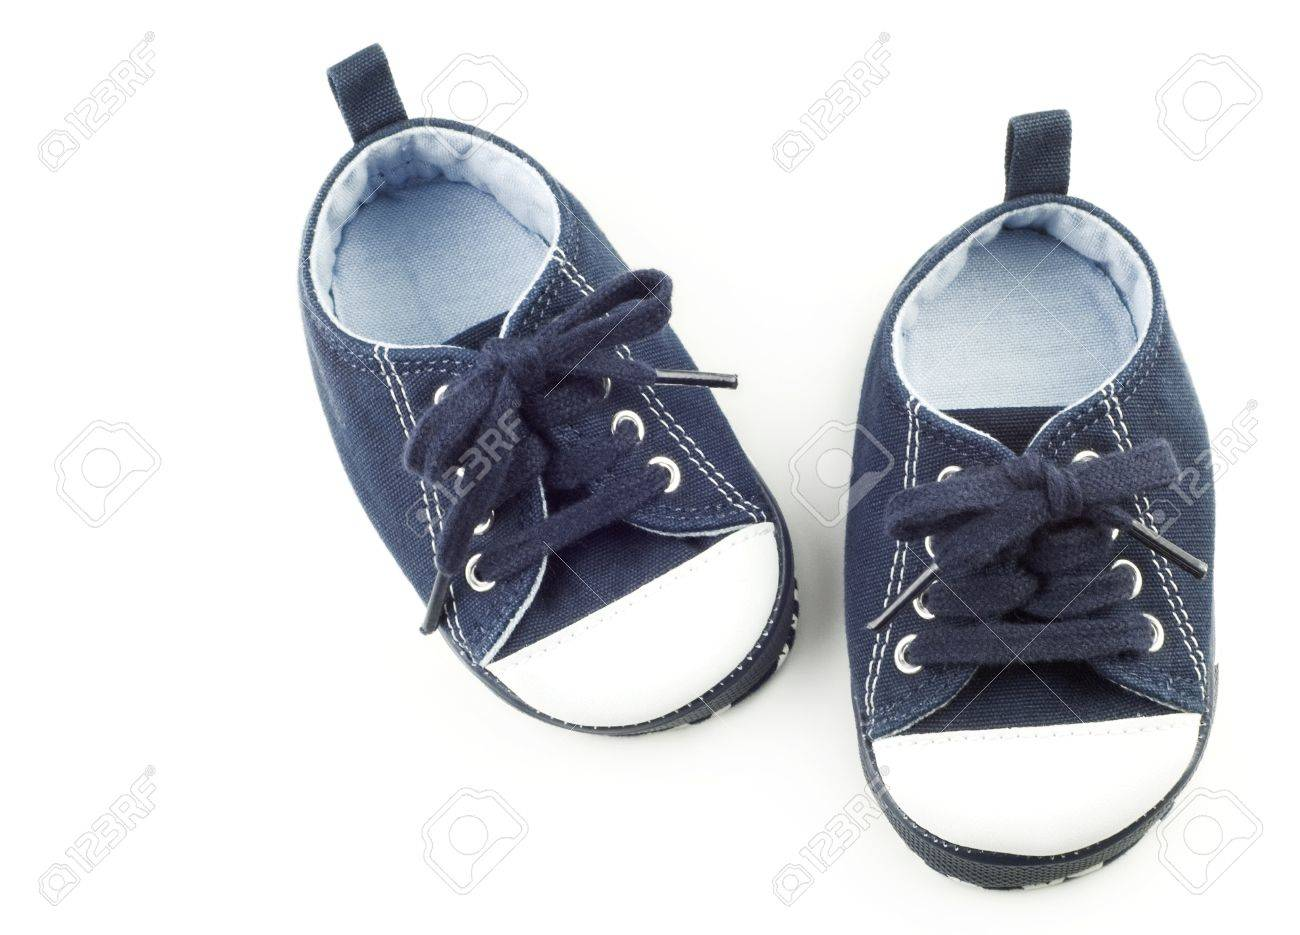 7052dc68b372 A Tiny Pair Of Blue Infant Shoes For A Boy